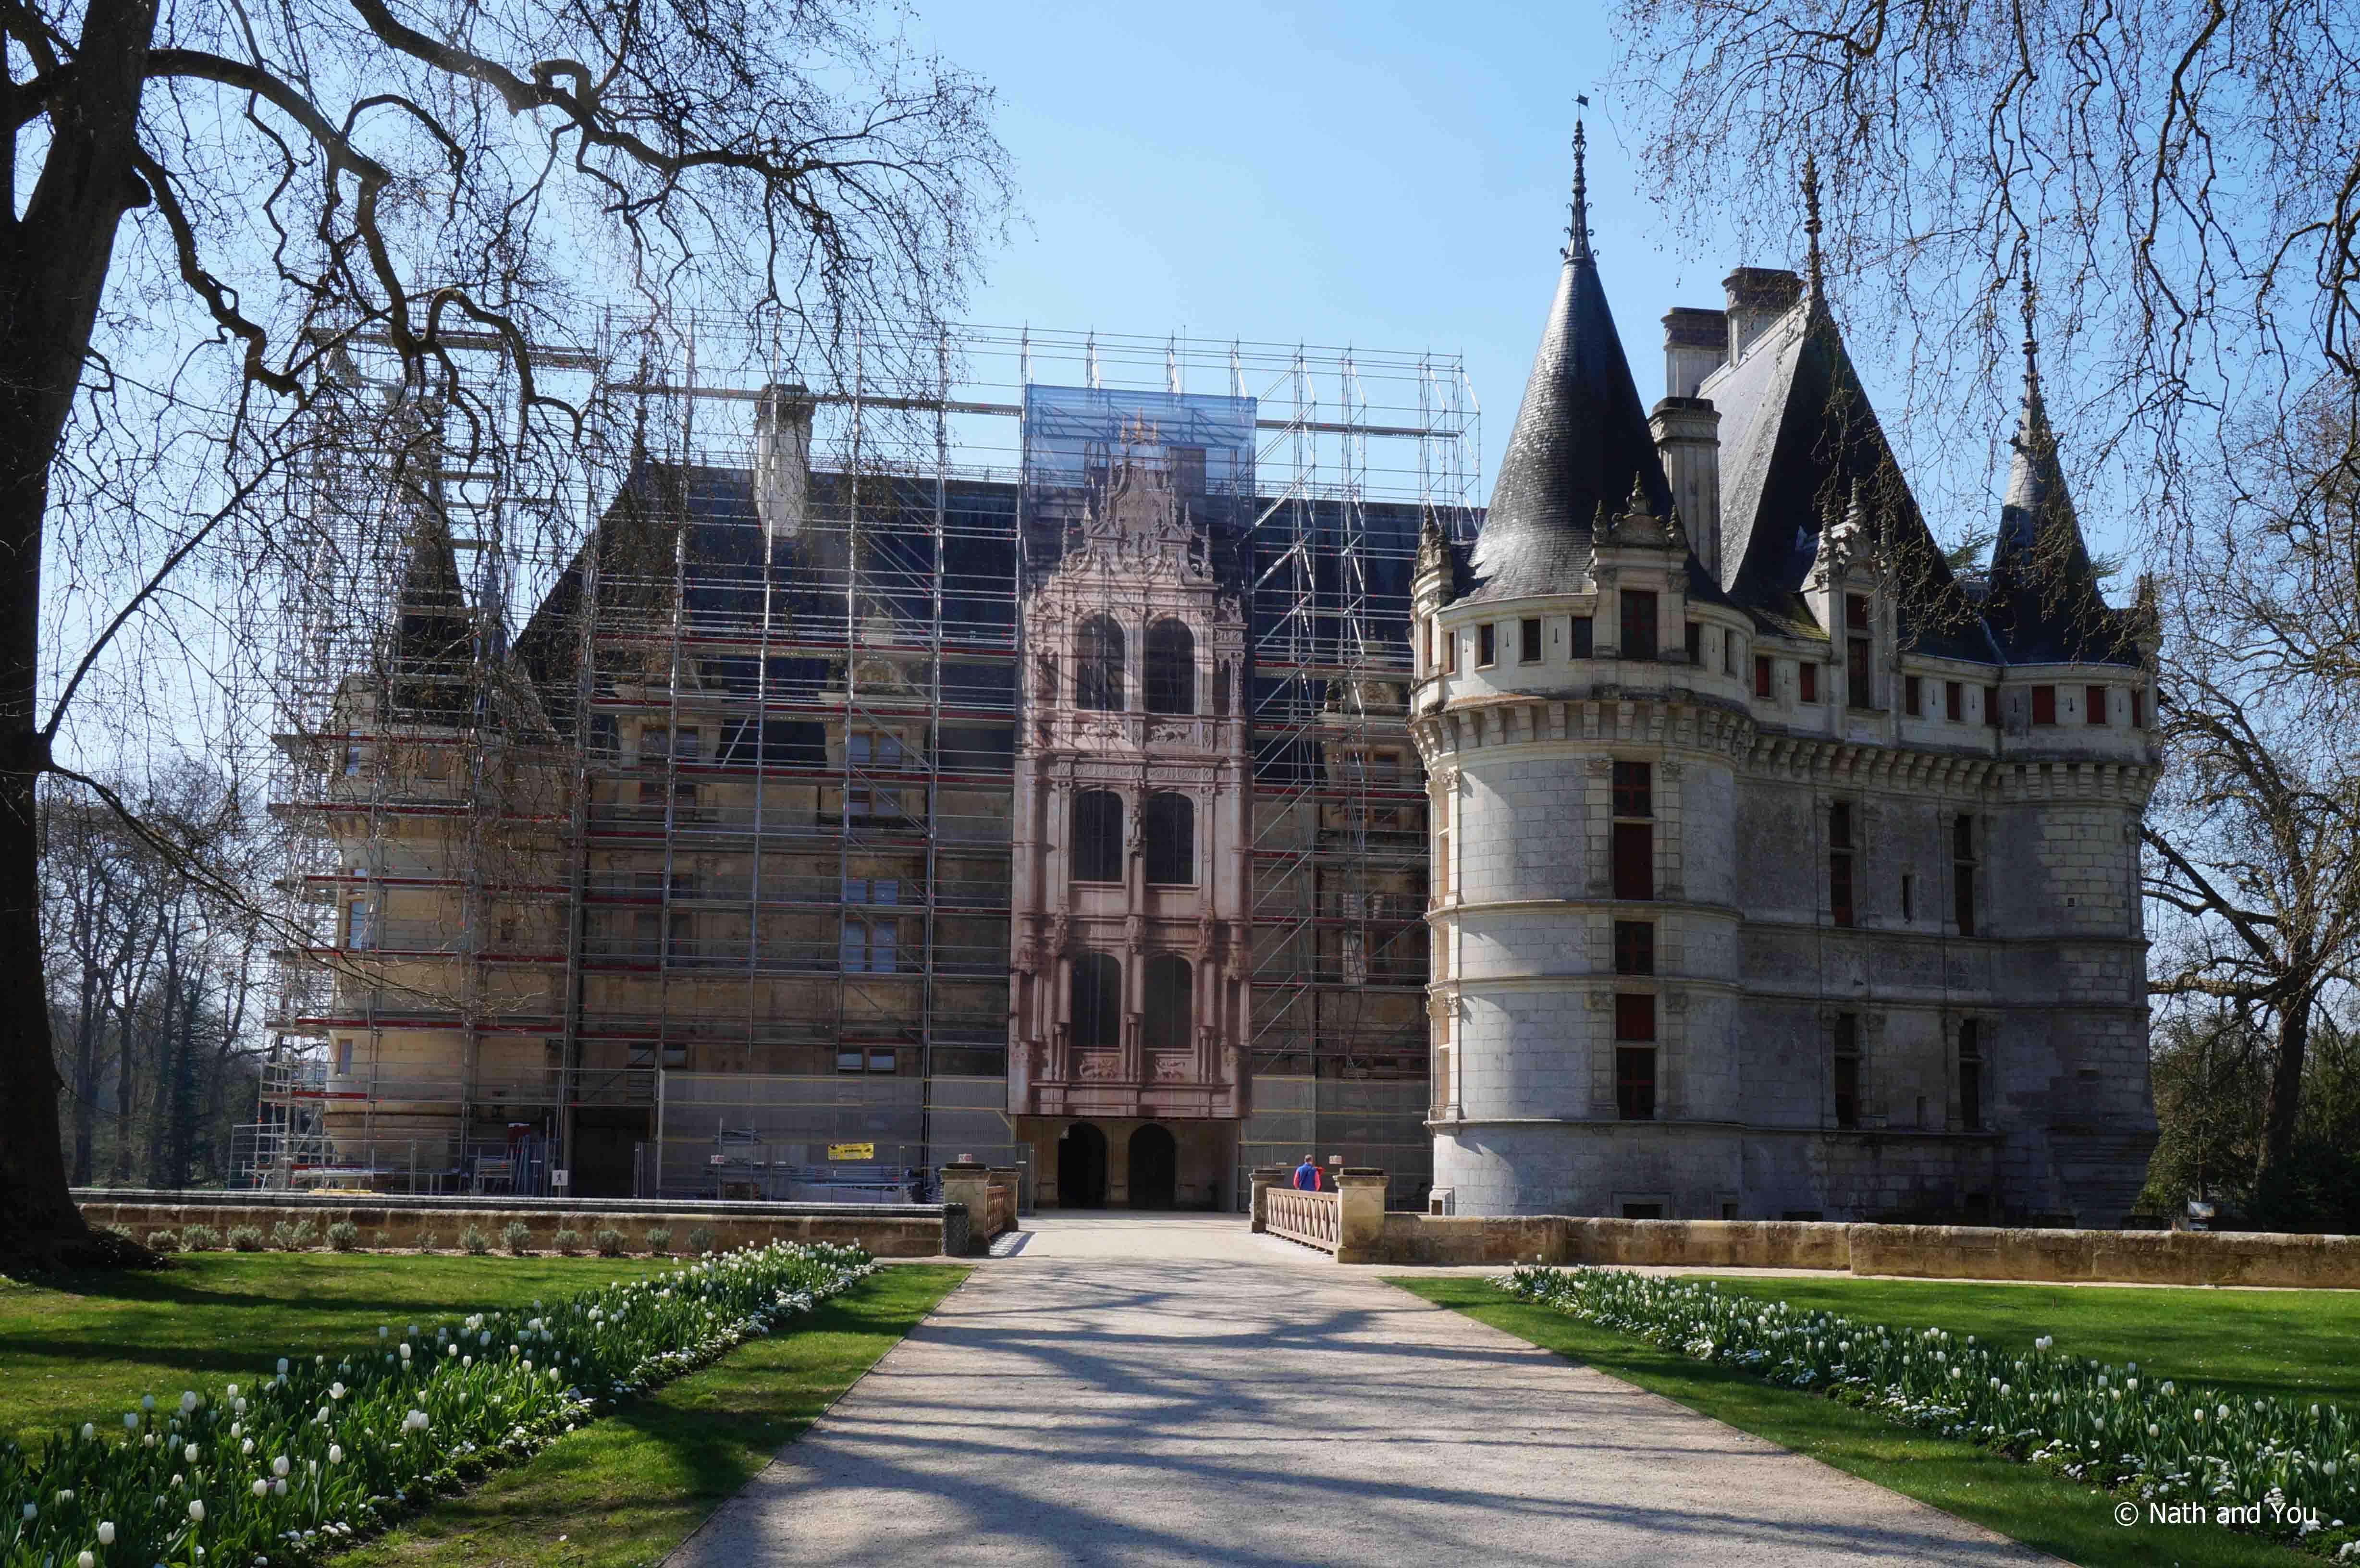 Azay-le-rideau-7-Chateaux-Loire-Nath-and-you